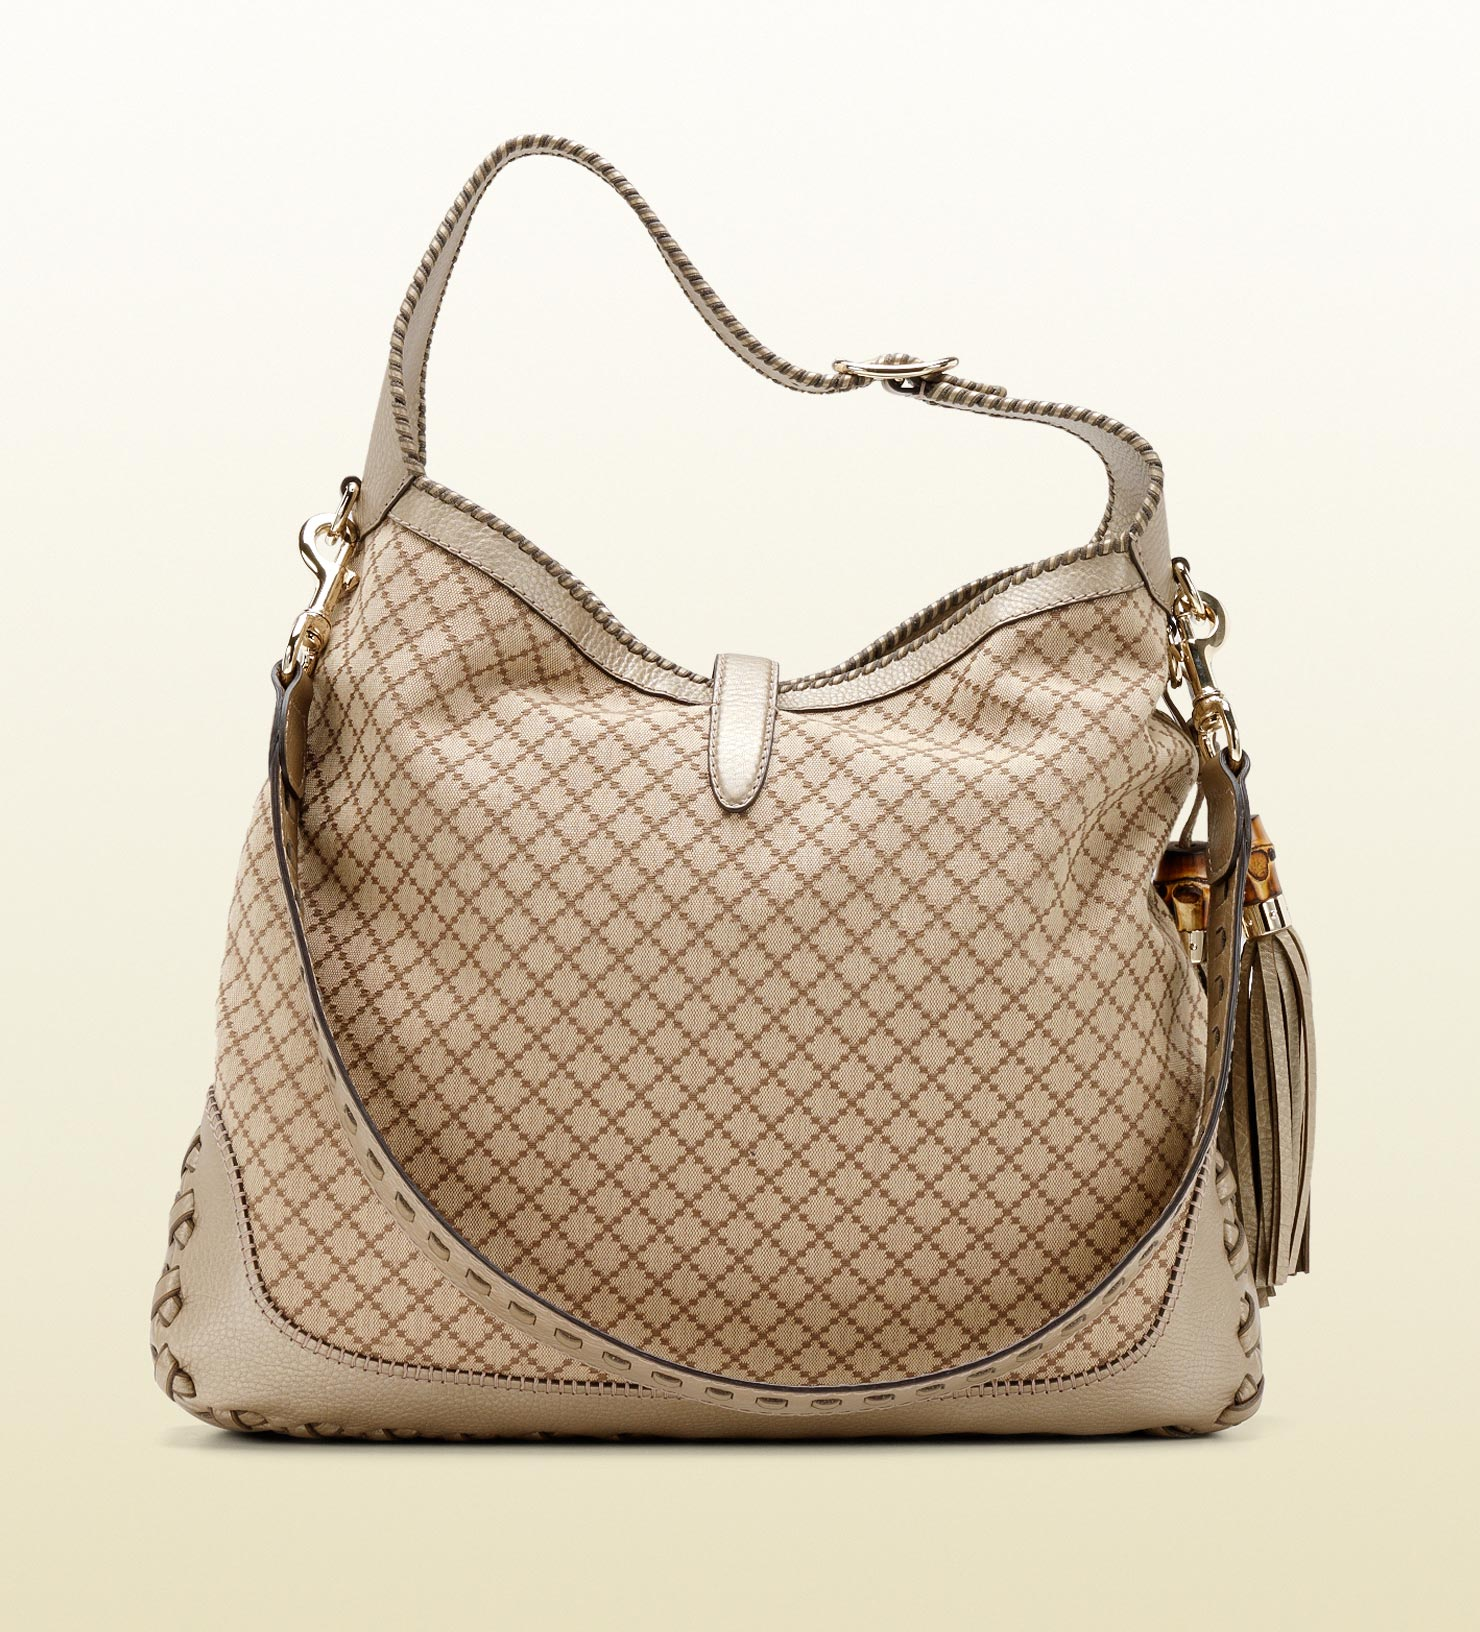 93599275e6d3 Gucci New Jackie Diamante Canvas Shoulder Bag in Natural - Lyst